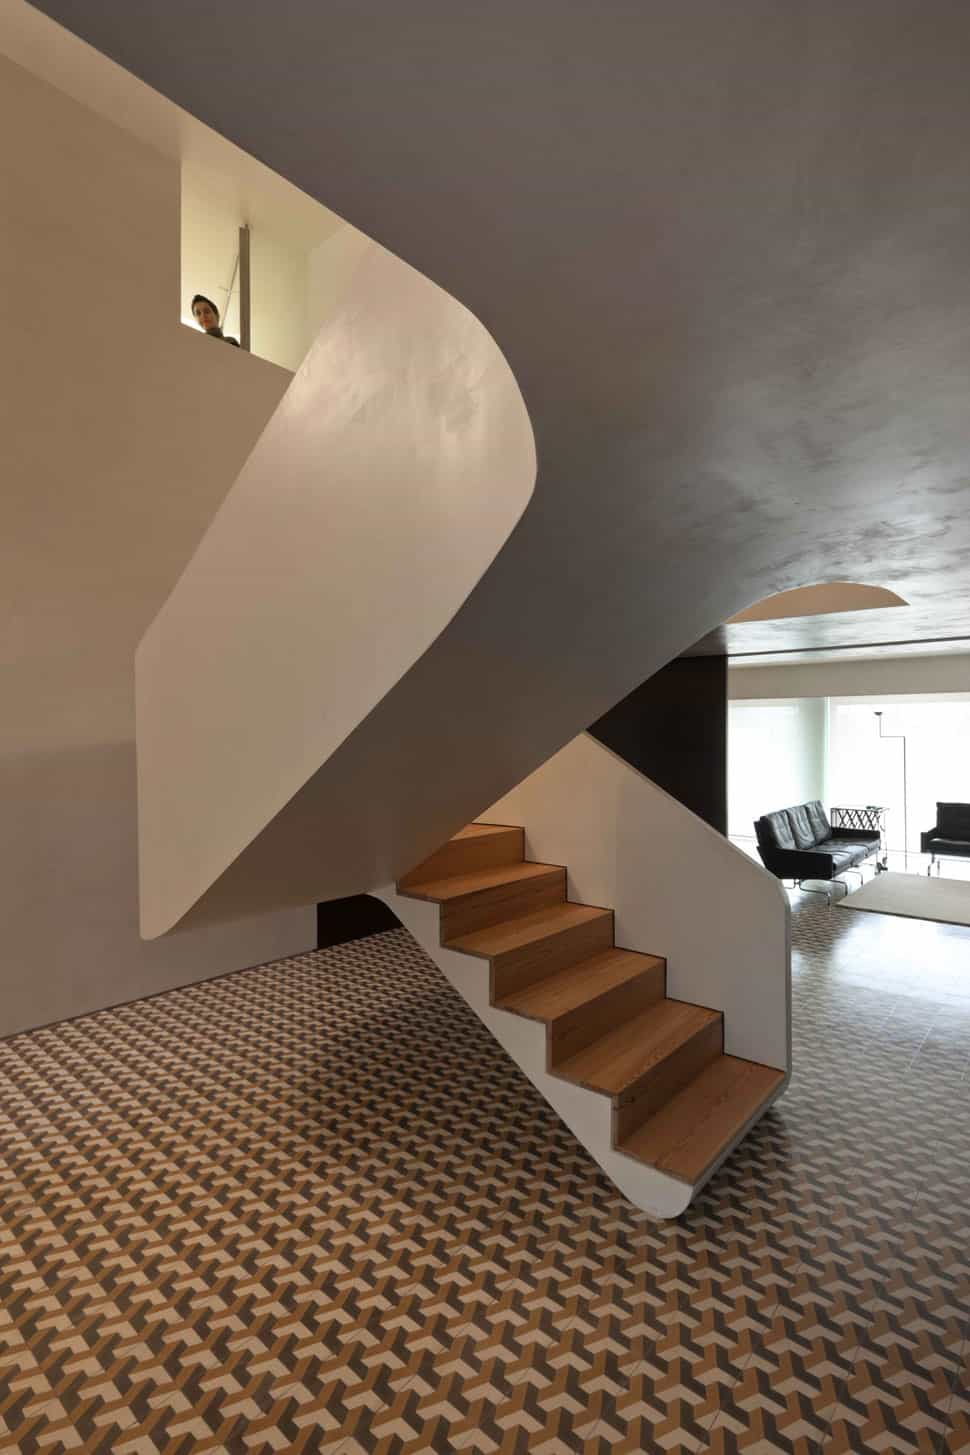 View In Gallery Minimalist Home With Bold Flooring And Staircase Sculpture